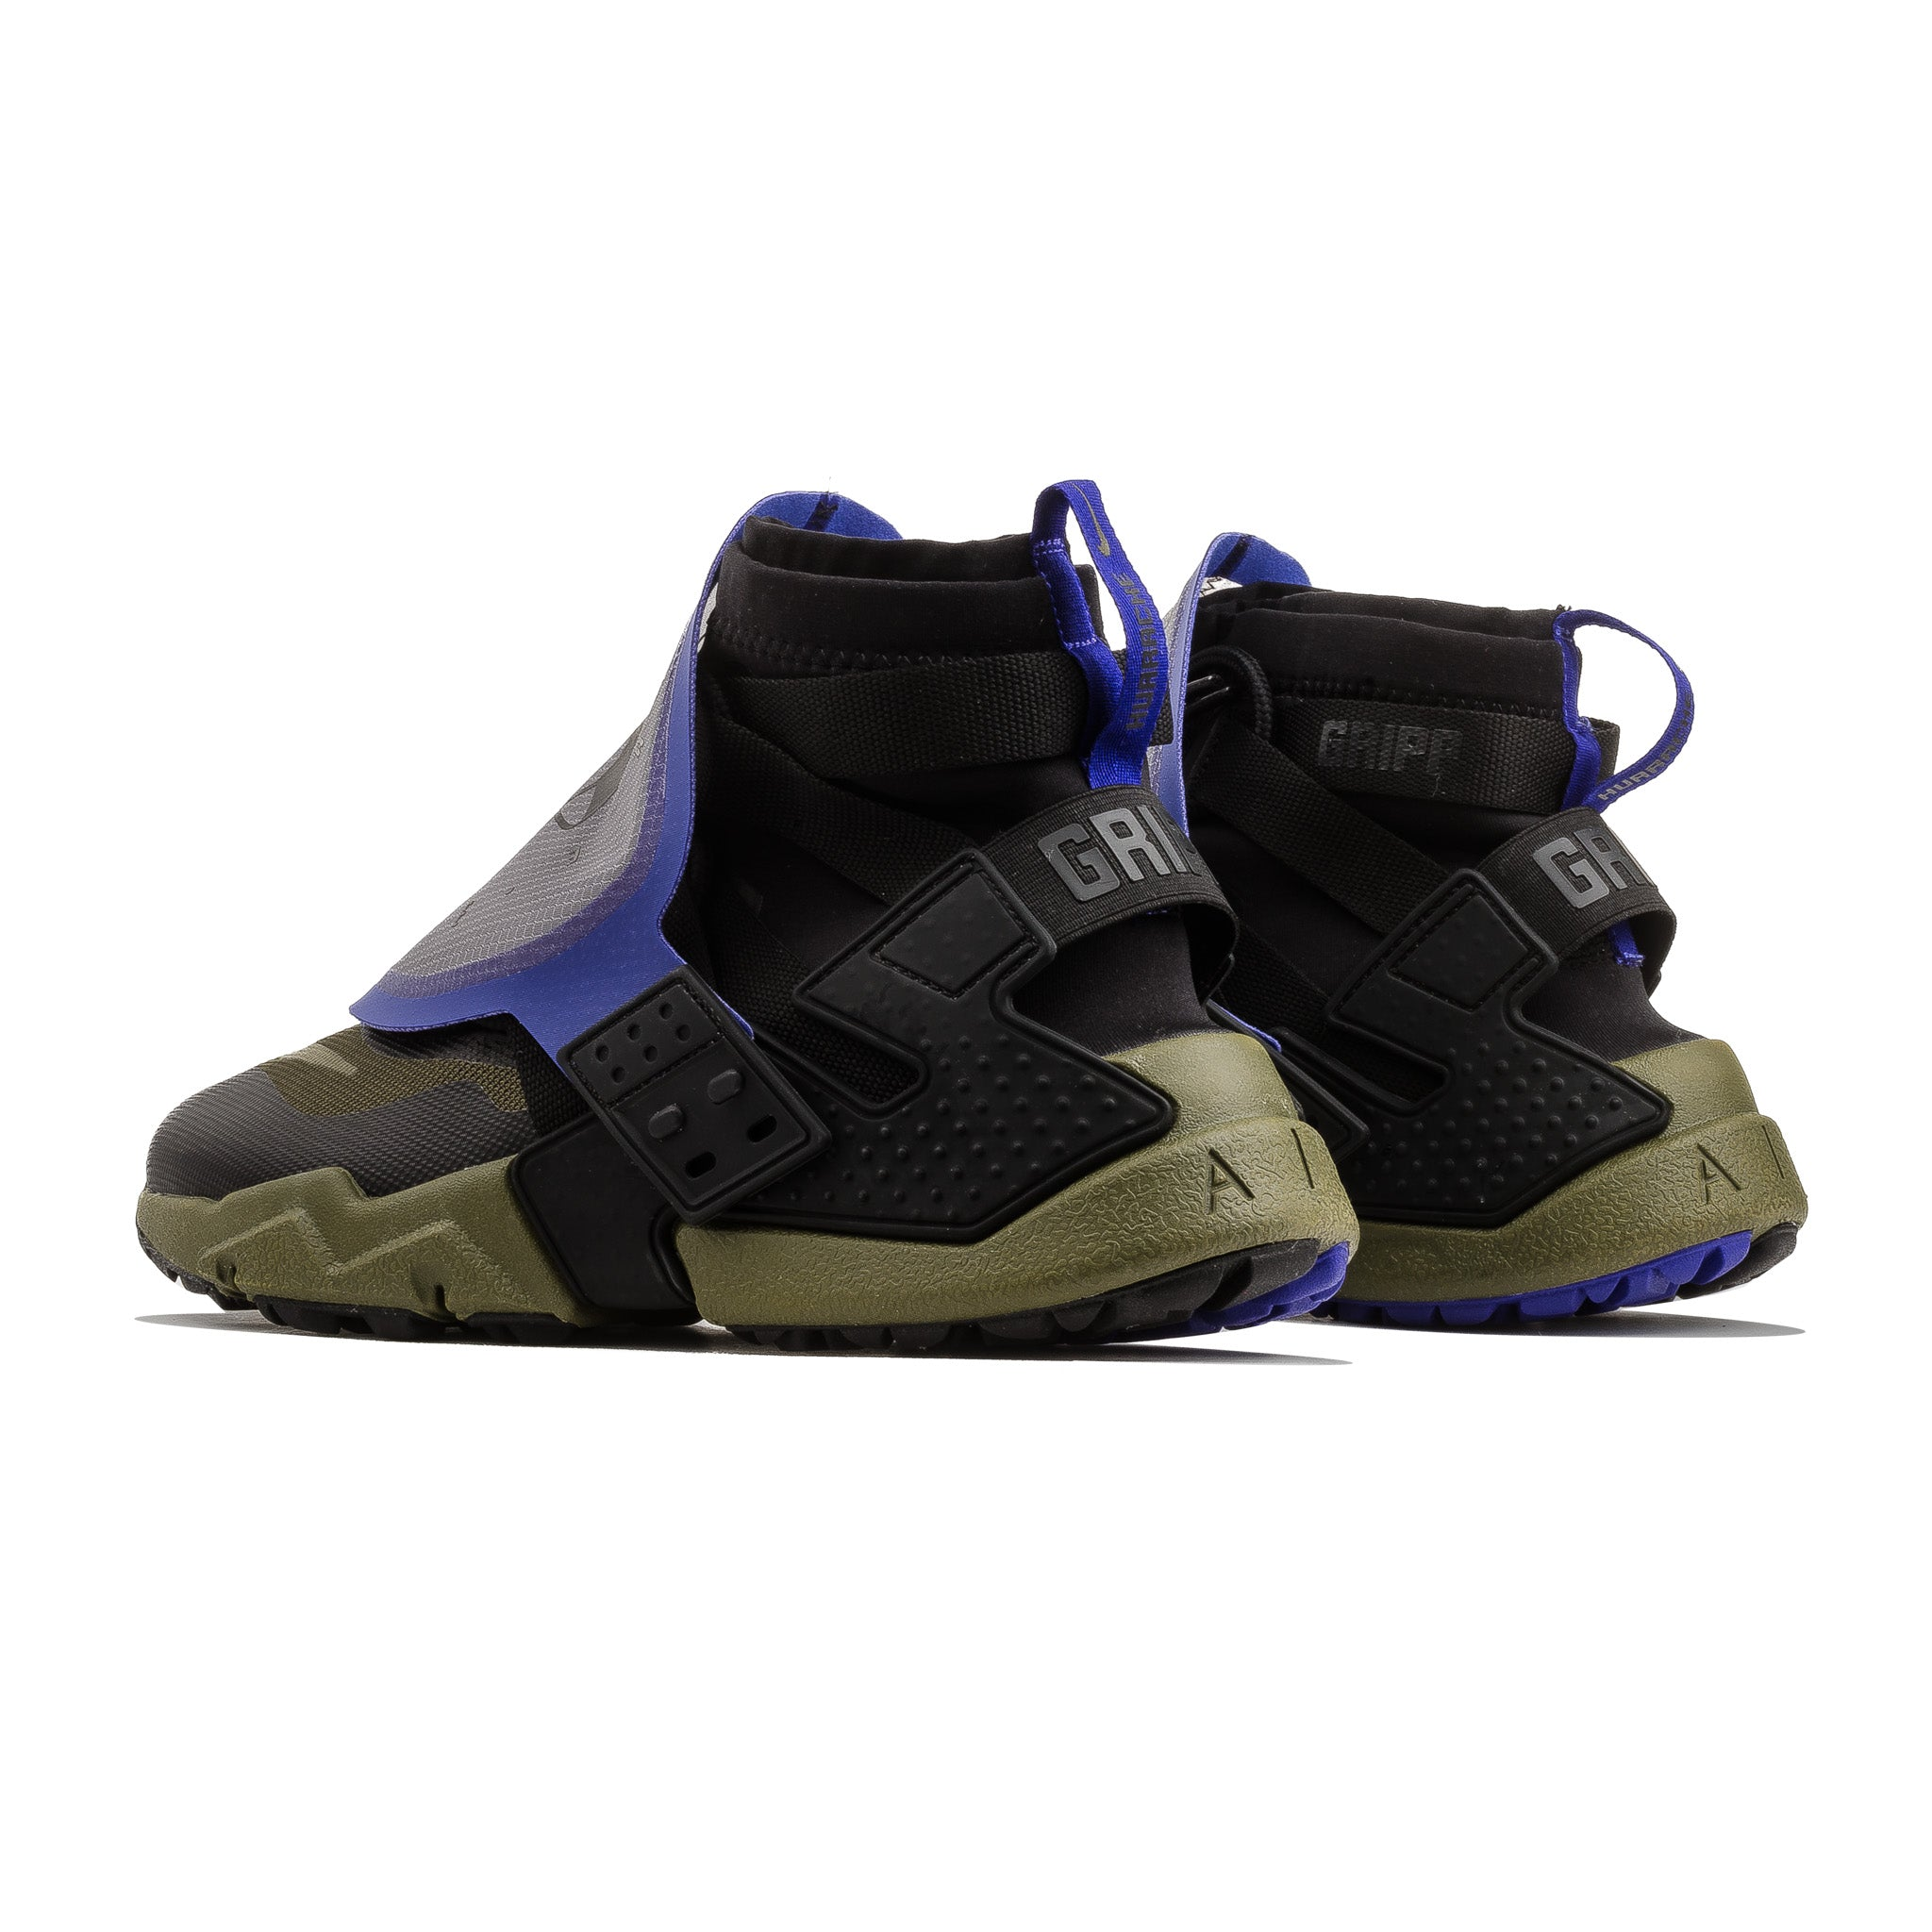 Air Huarache Gripp QS AT0298-001 Black